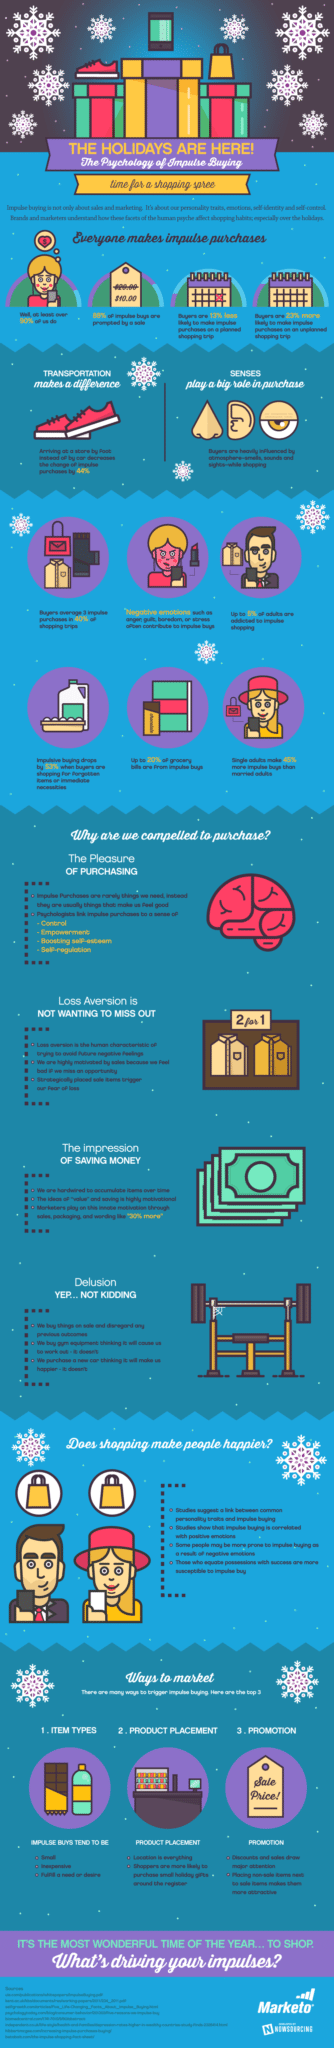 The-Psychology-of-Impulse-Buying-Infographic